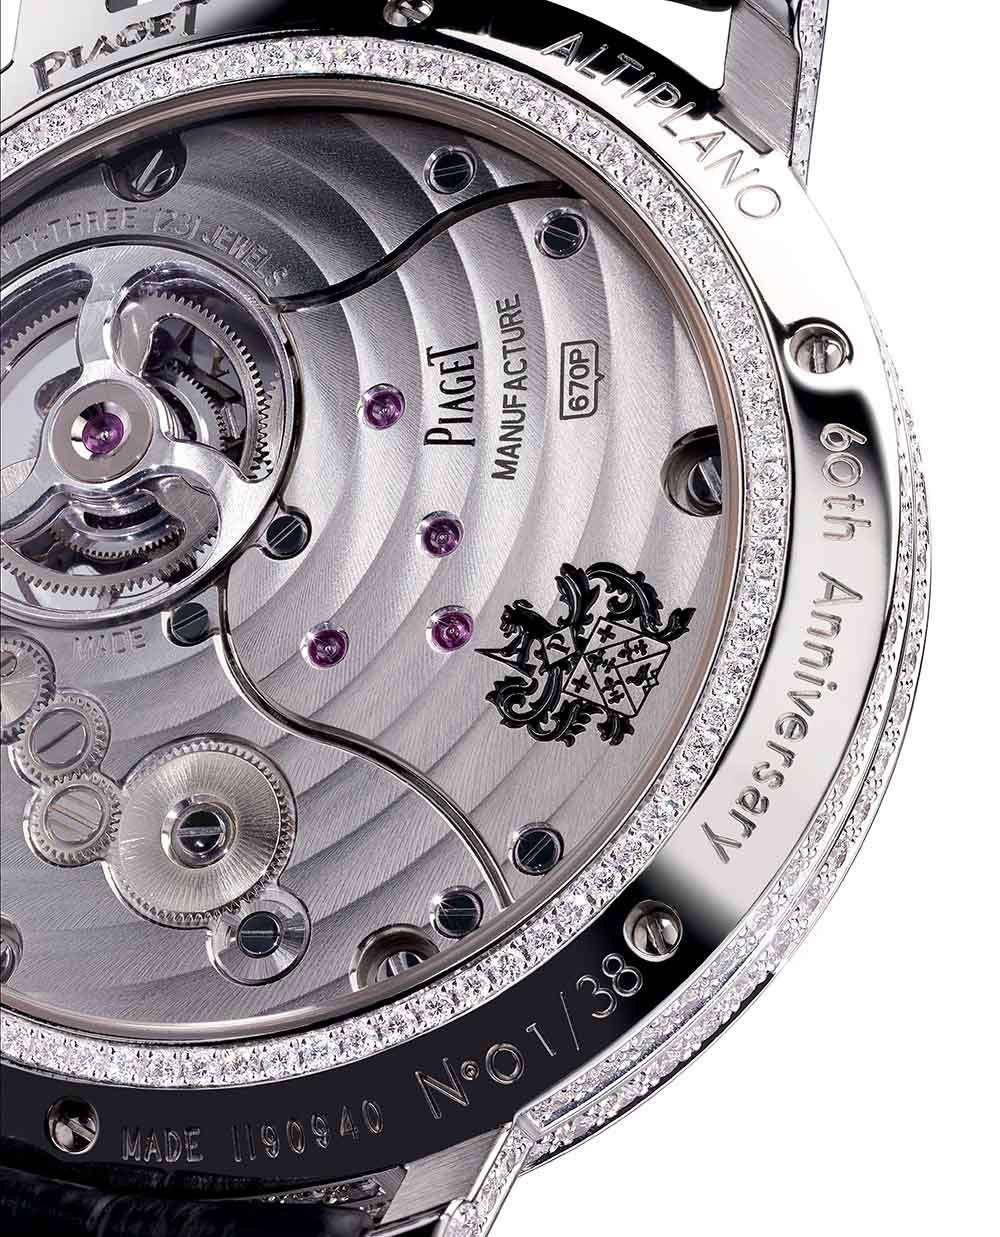 PIAGET ALTIPLANO TOURBILLON ALTA JOYERÍA Rreloj_altiplano_tourbillon-movement_3